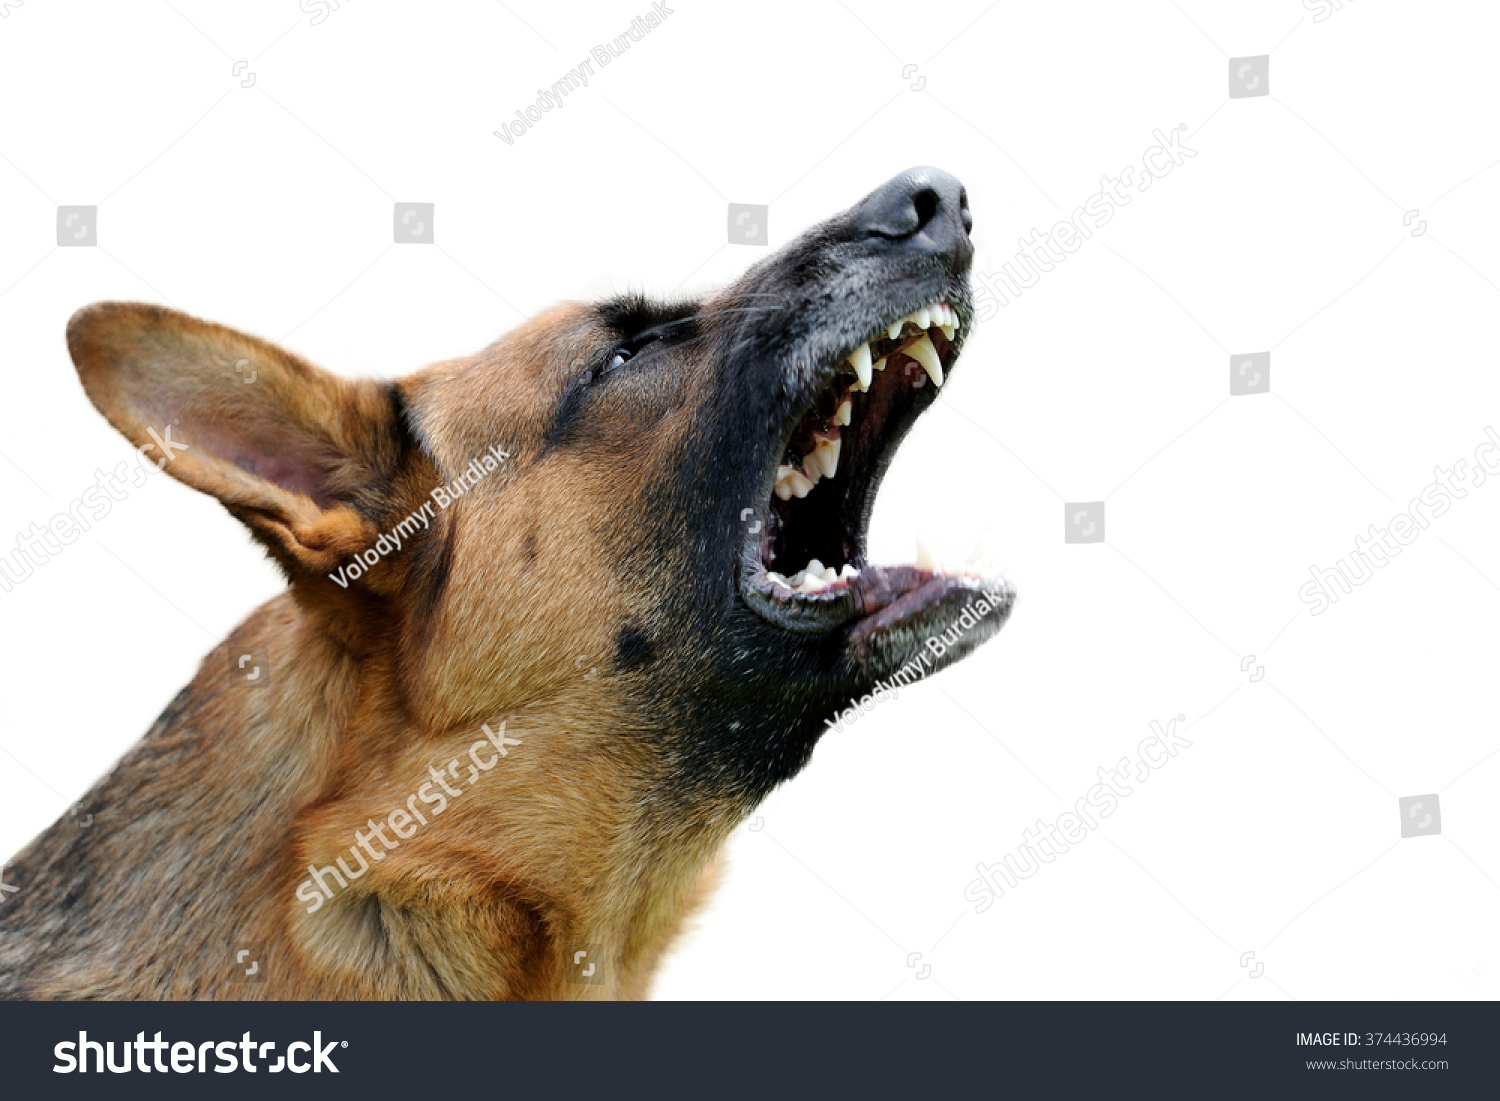 Close-up portrait angry dog isolated on white background